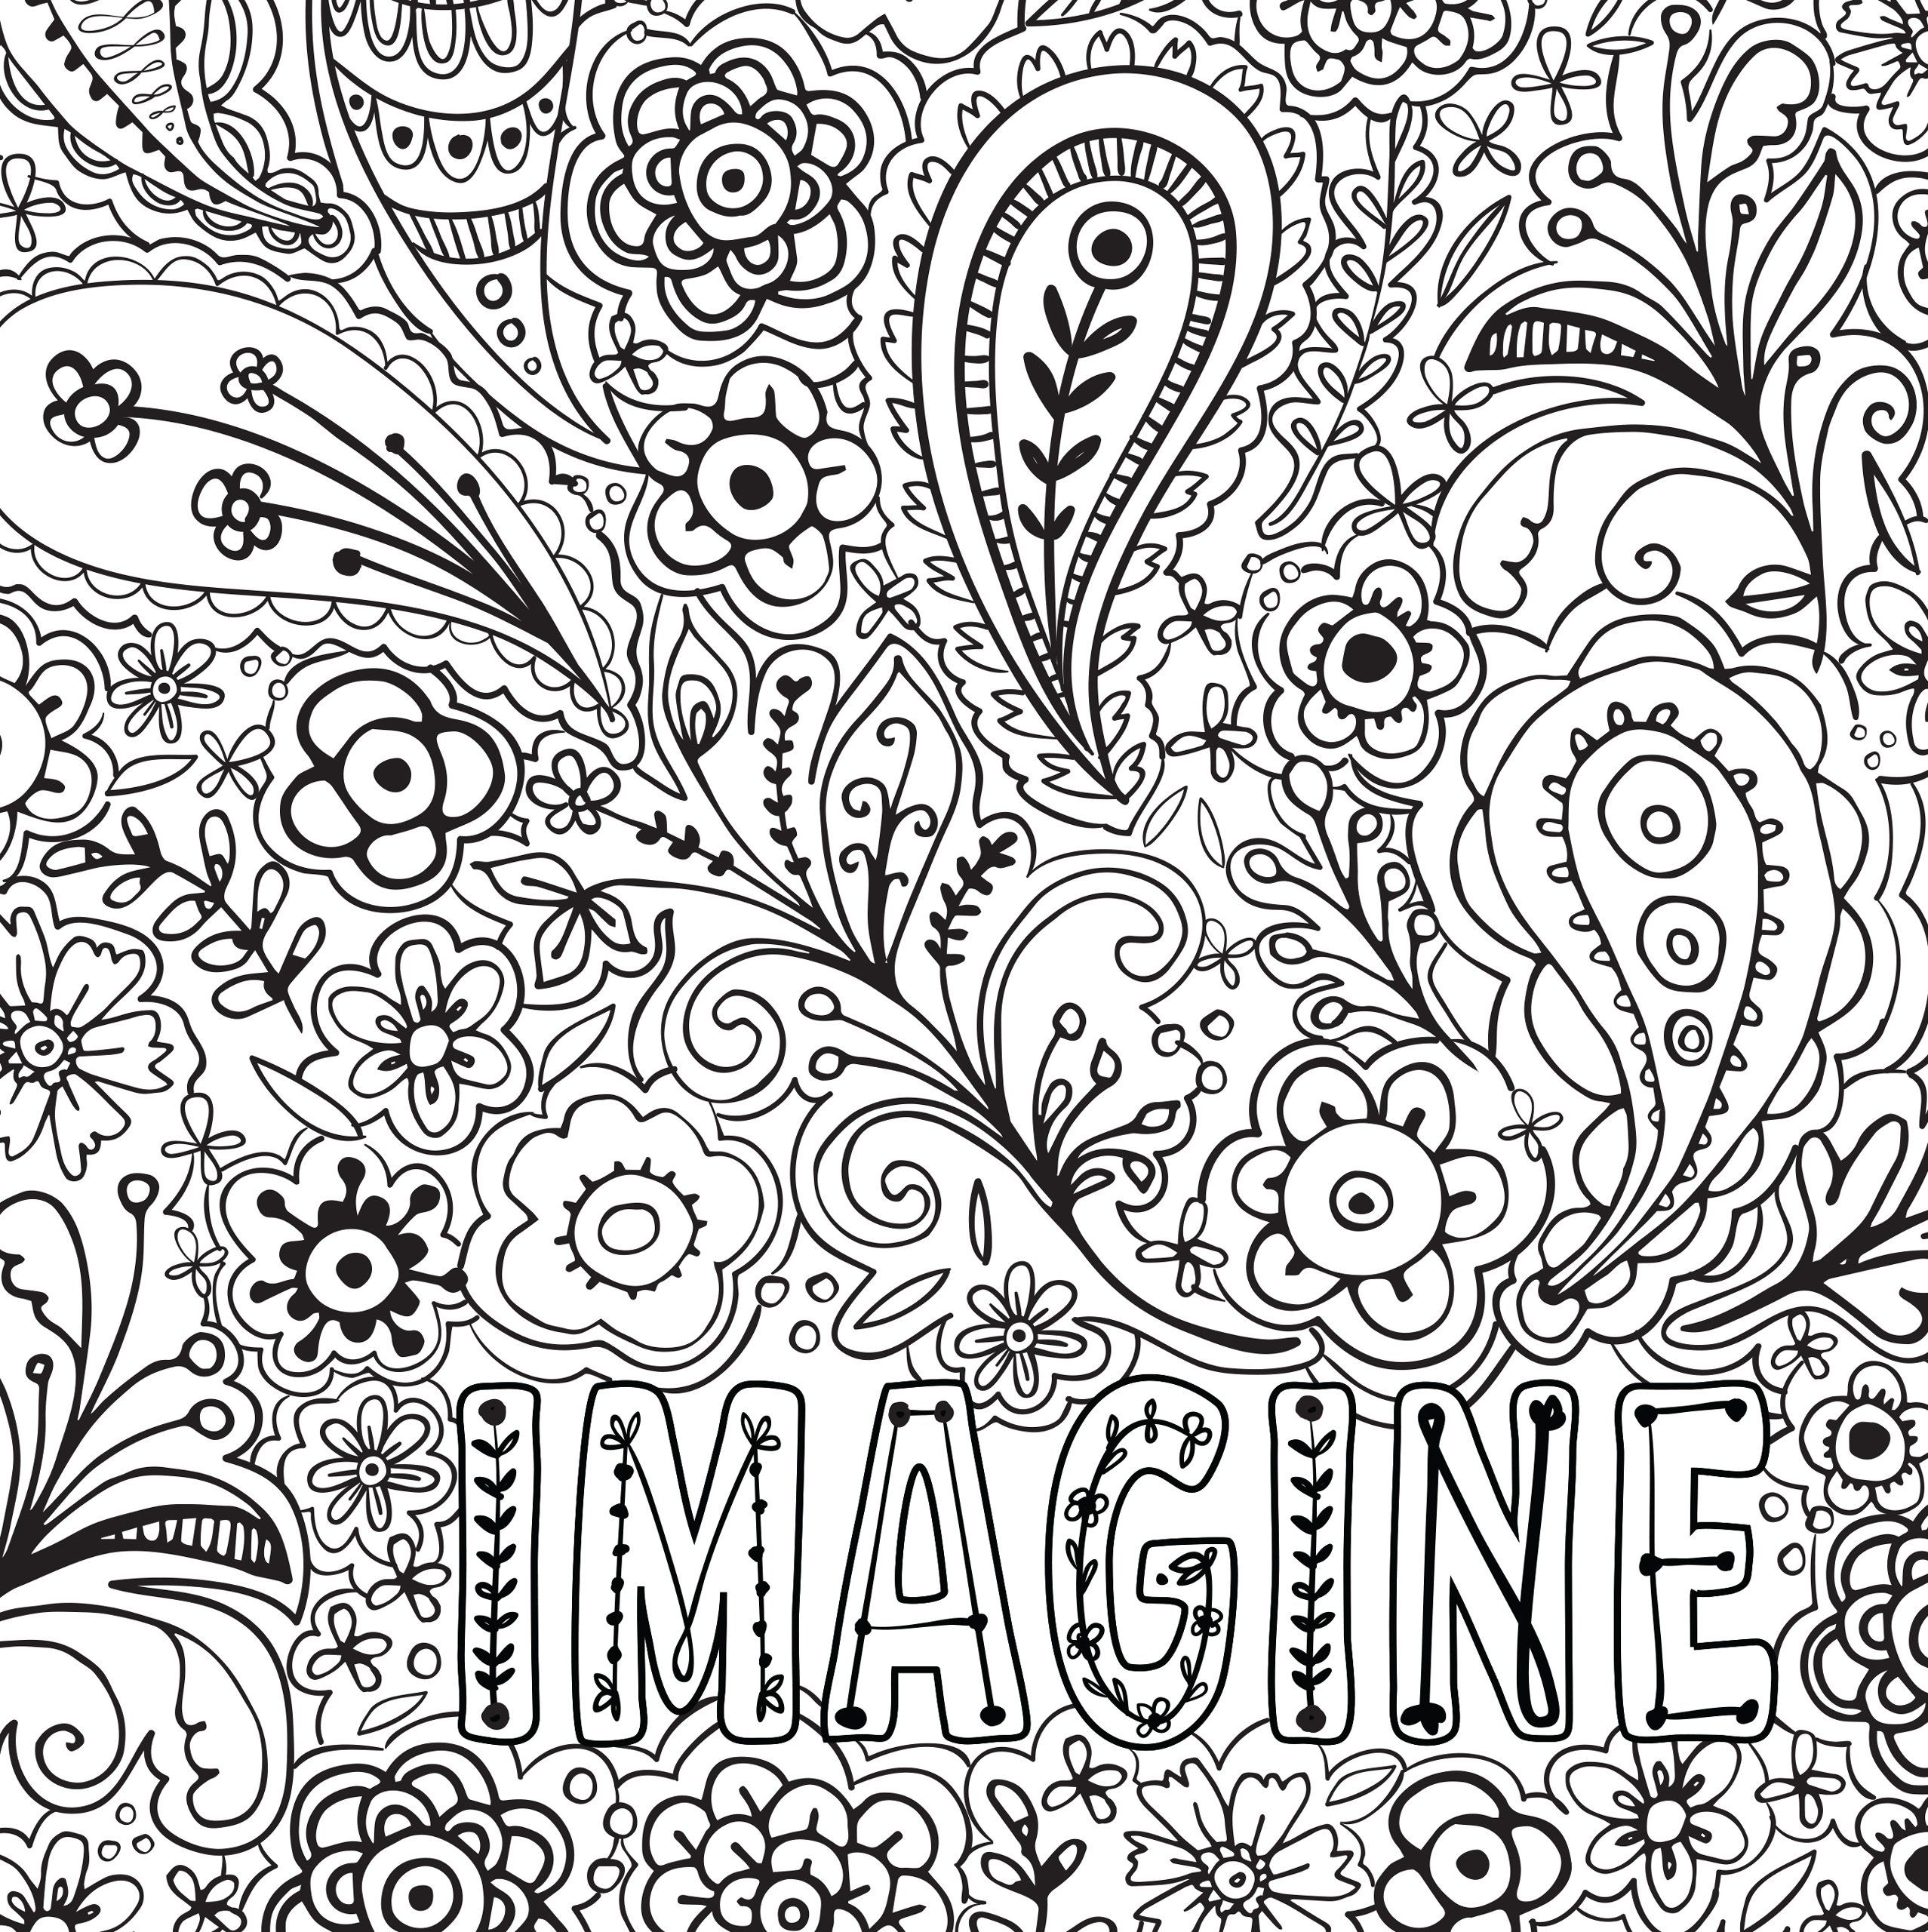 Free Stress Relief Coloring Pages Cinebrique